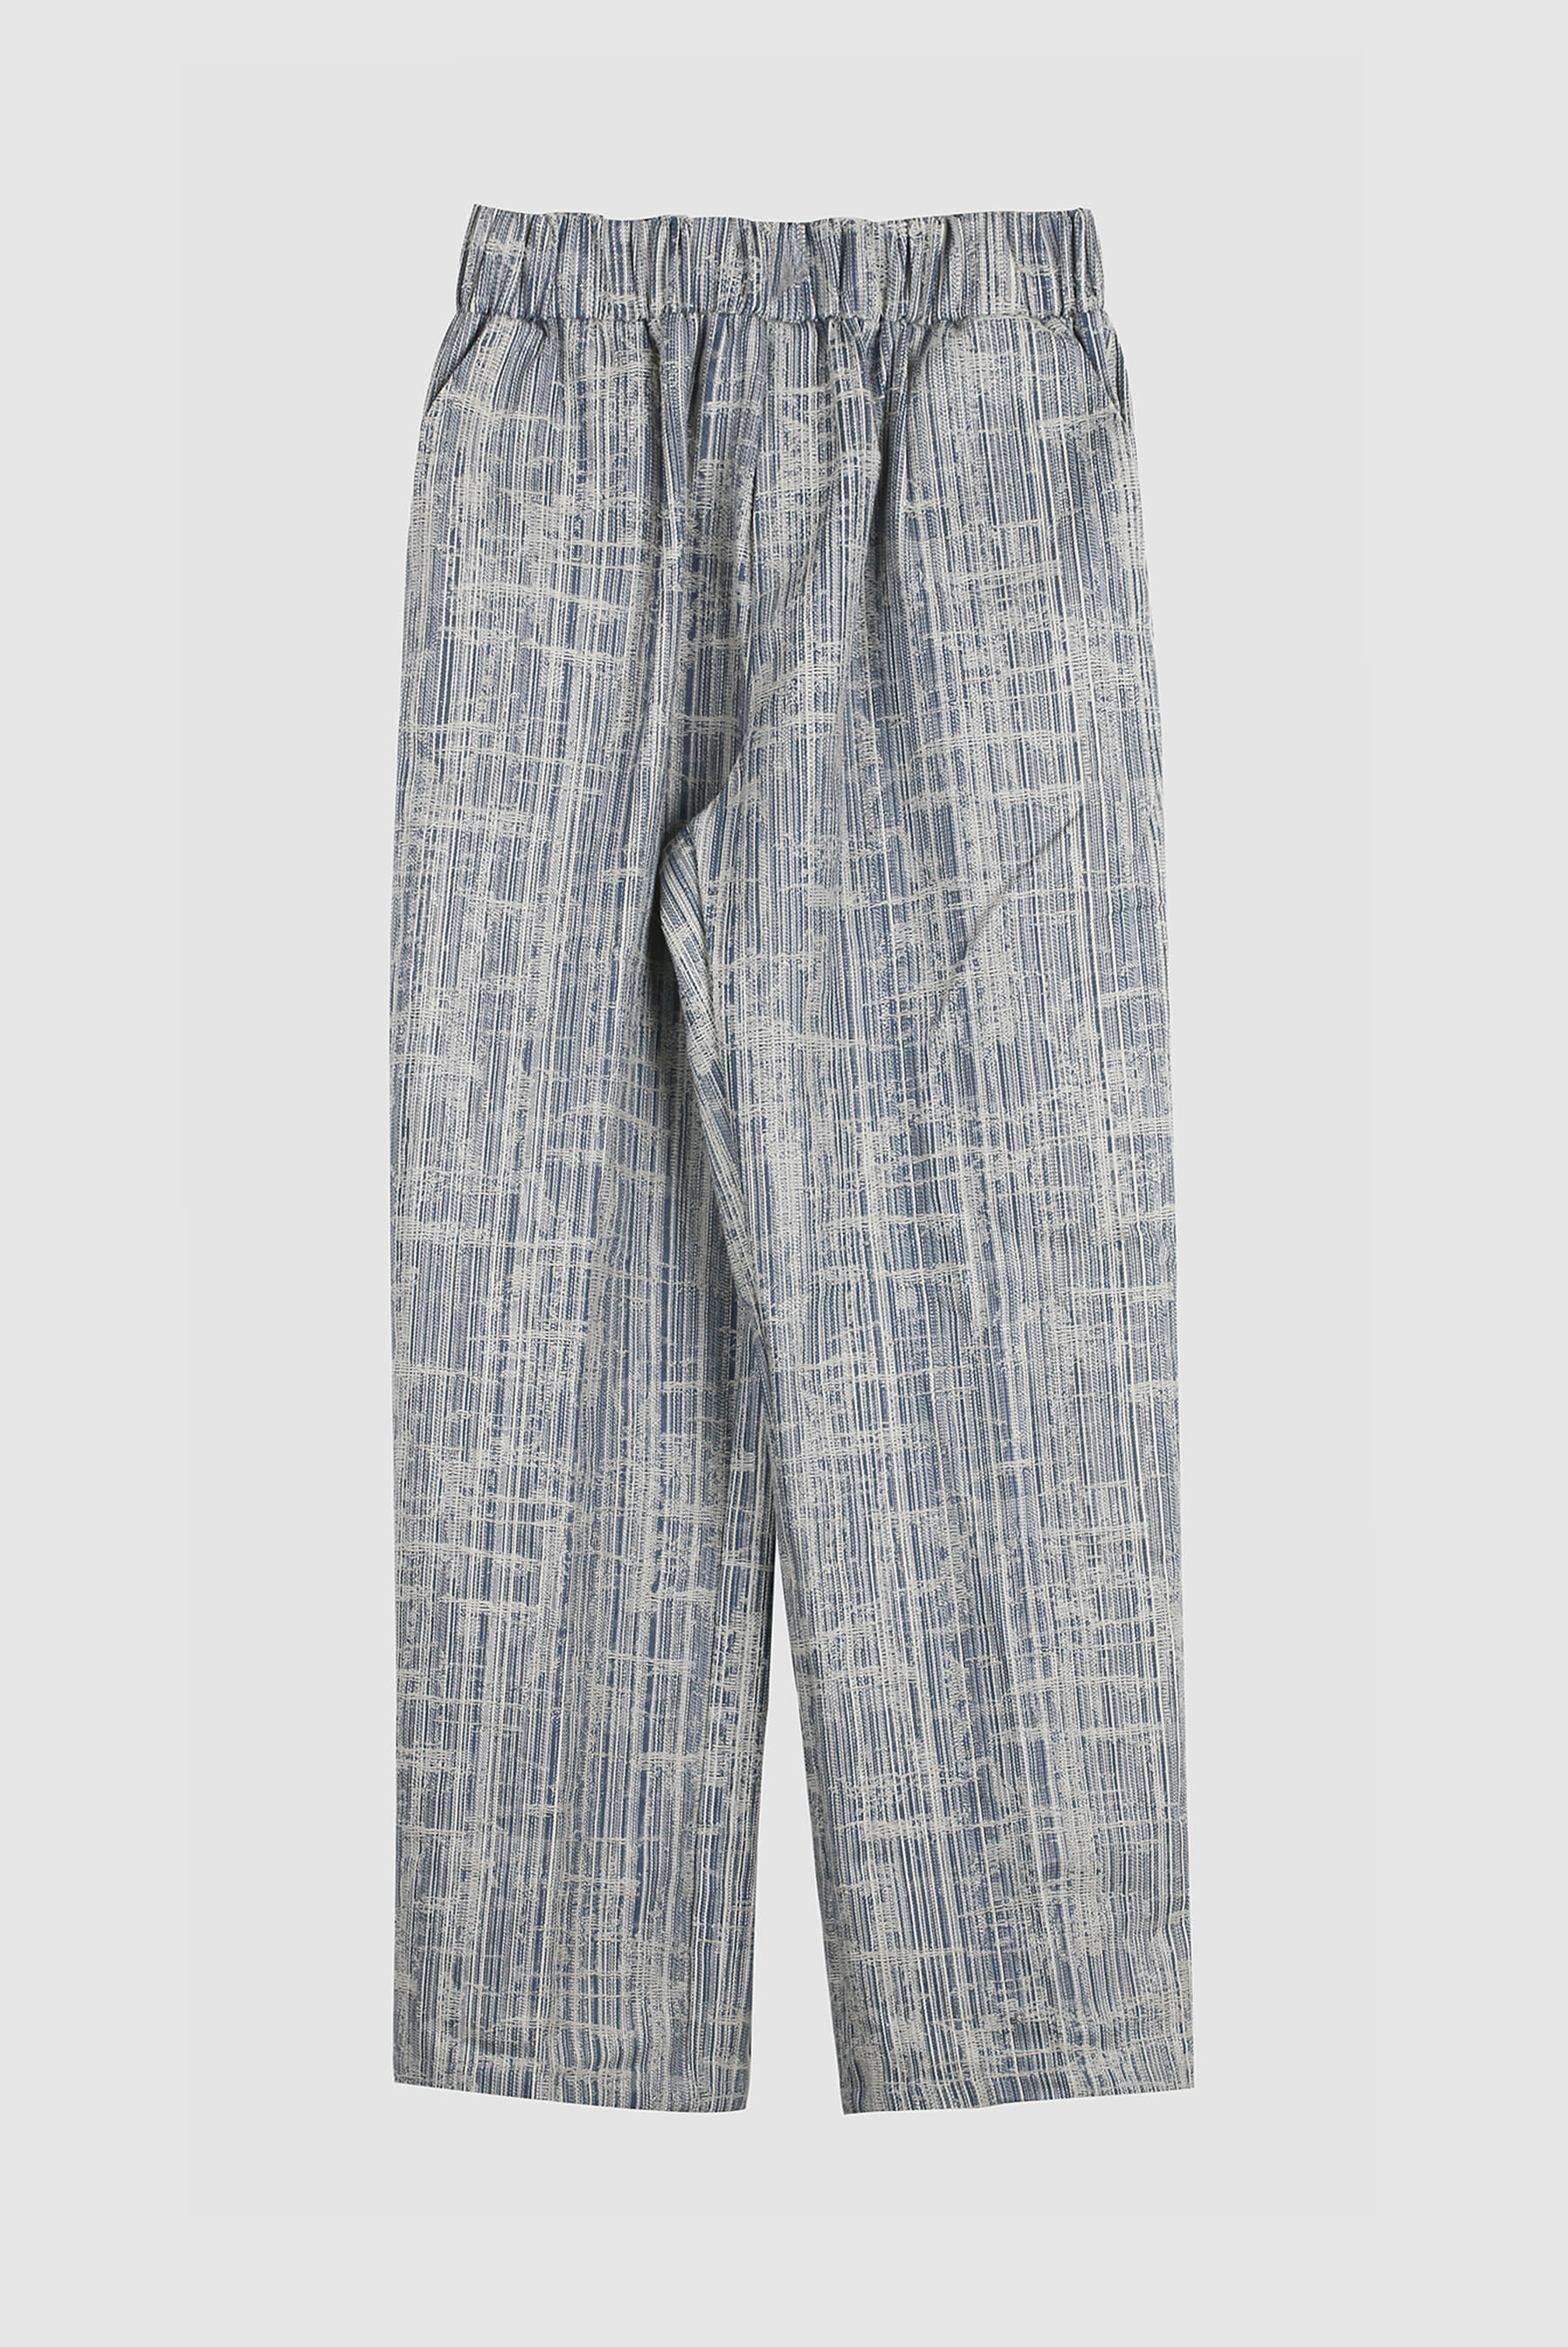 Brush_Vintage_Denim_Pants